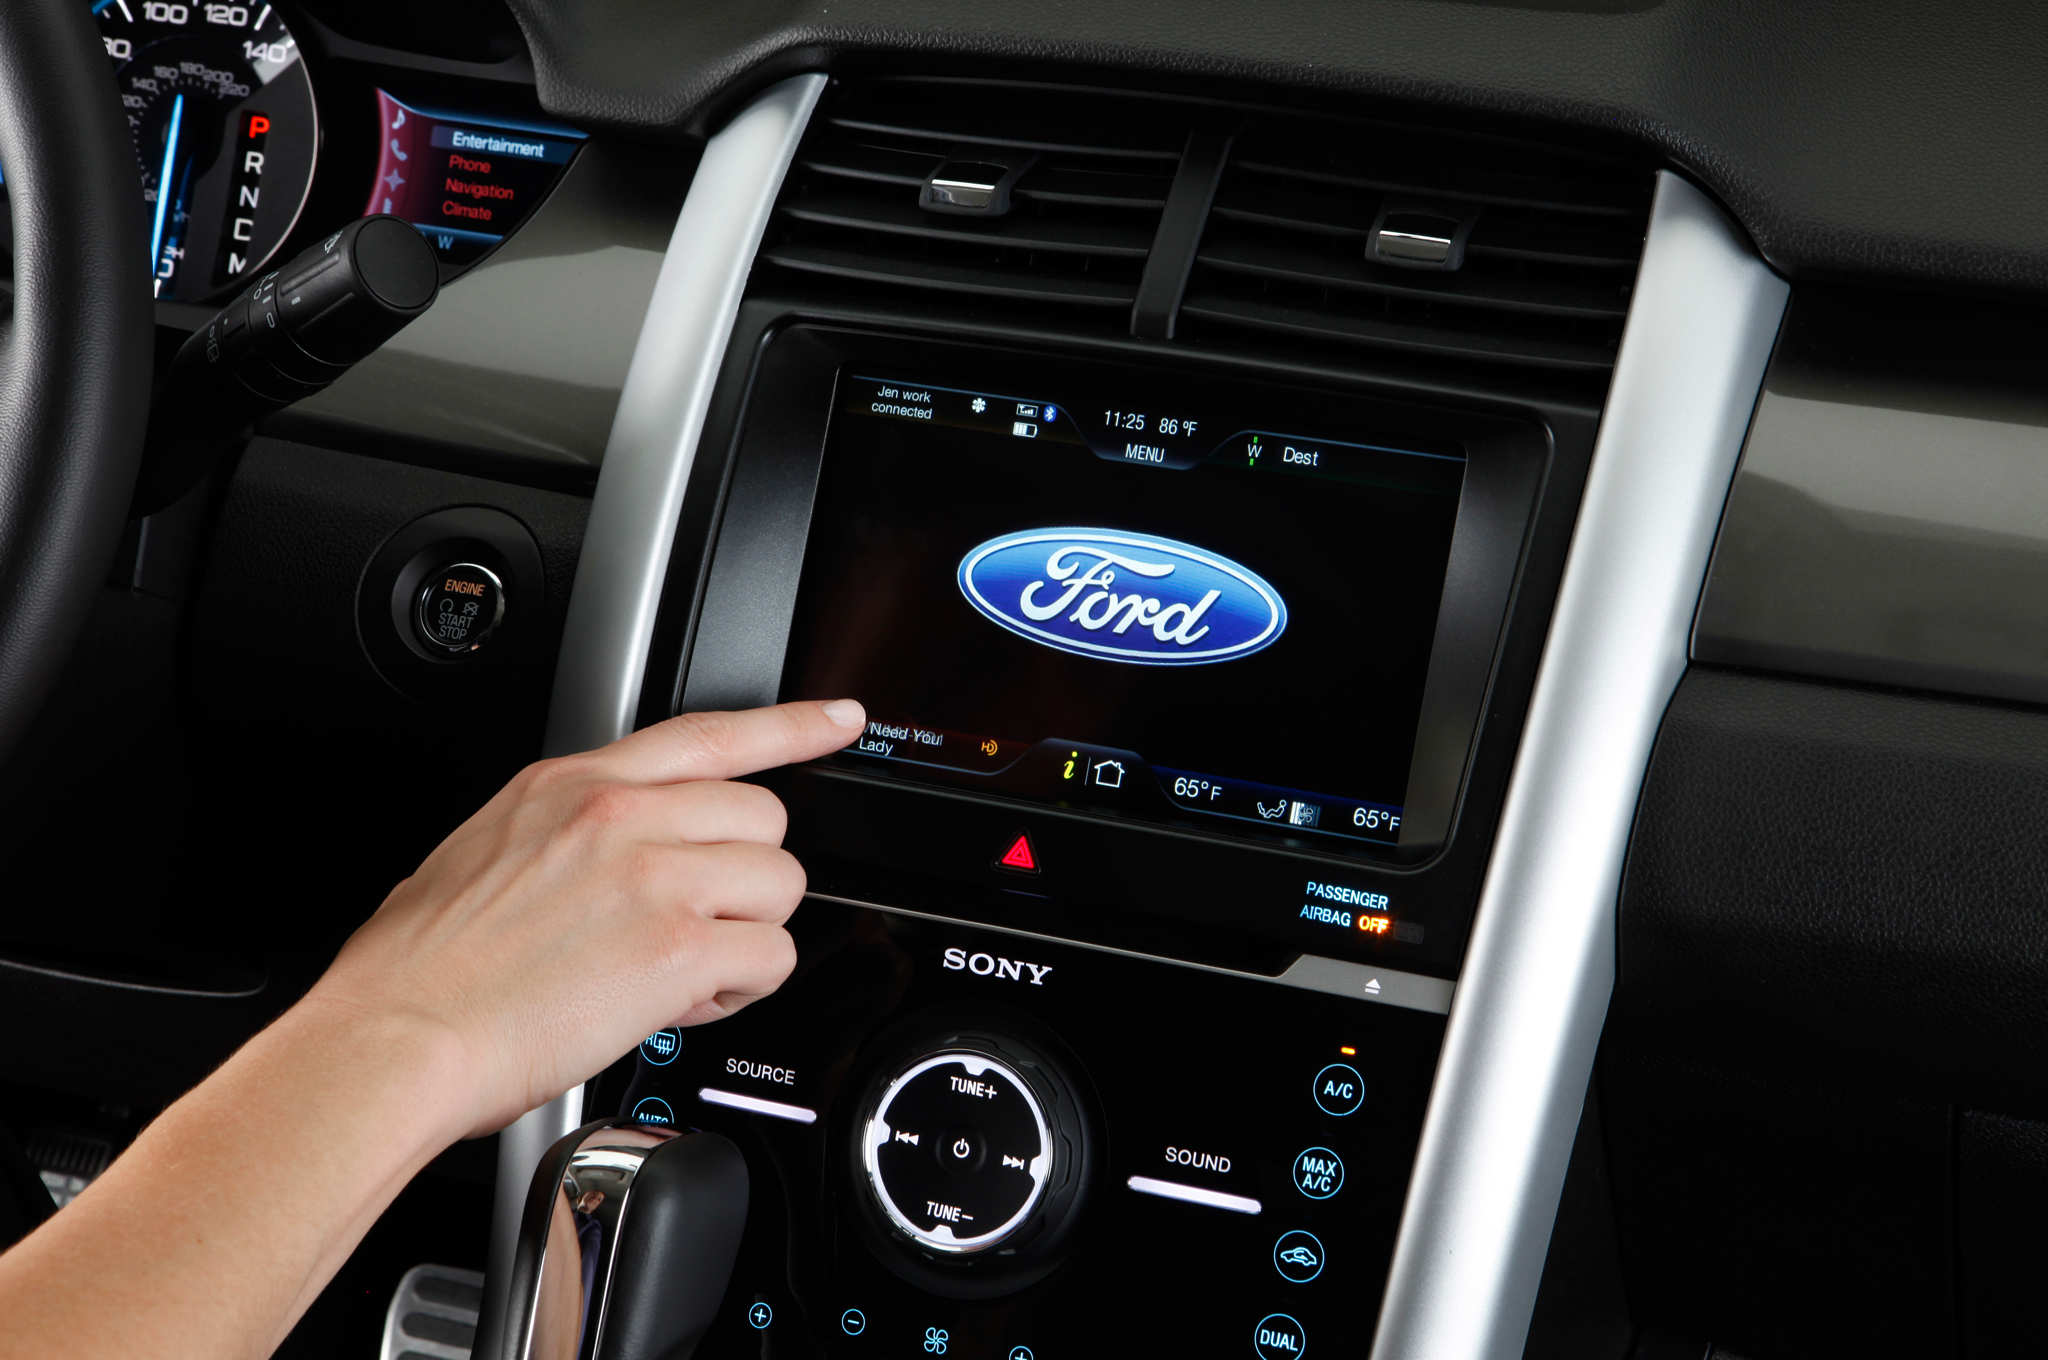 2011 ford edge myford touch